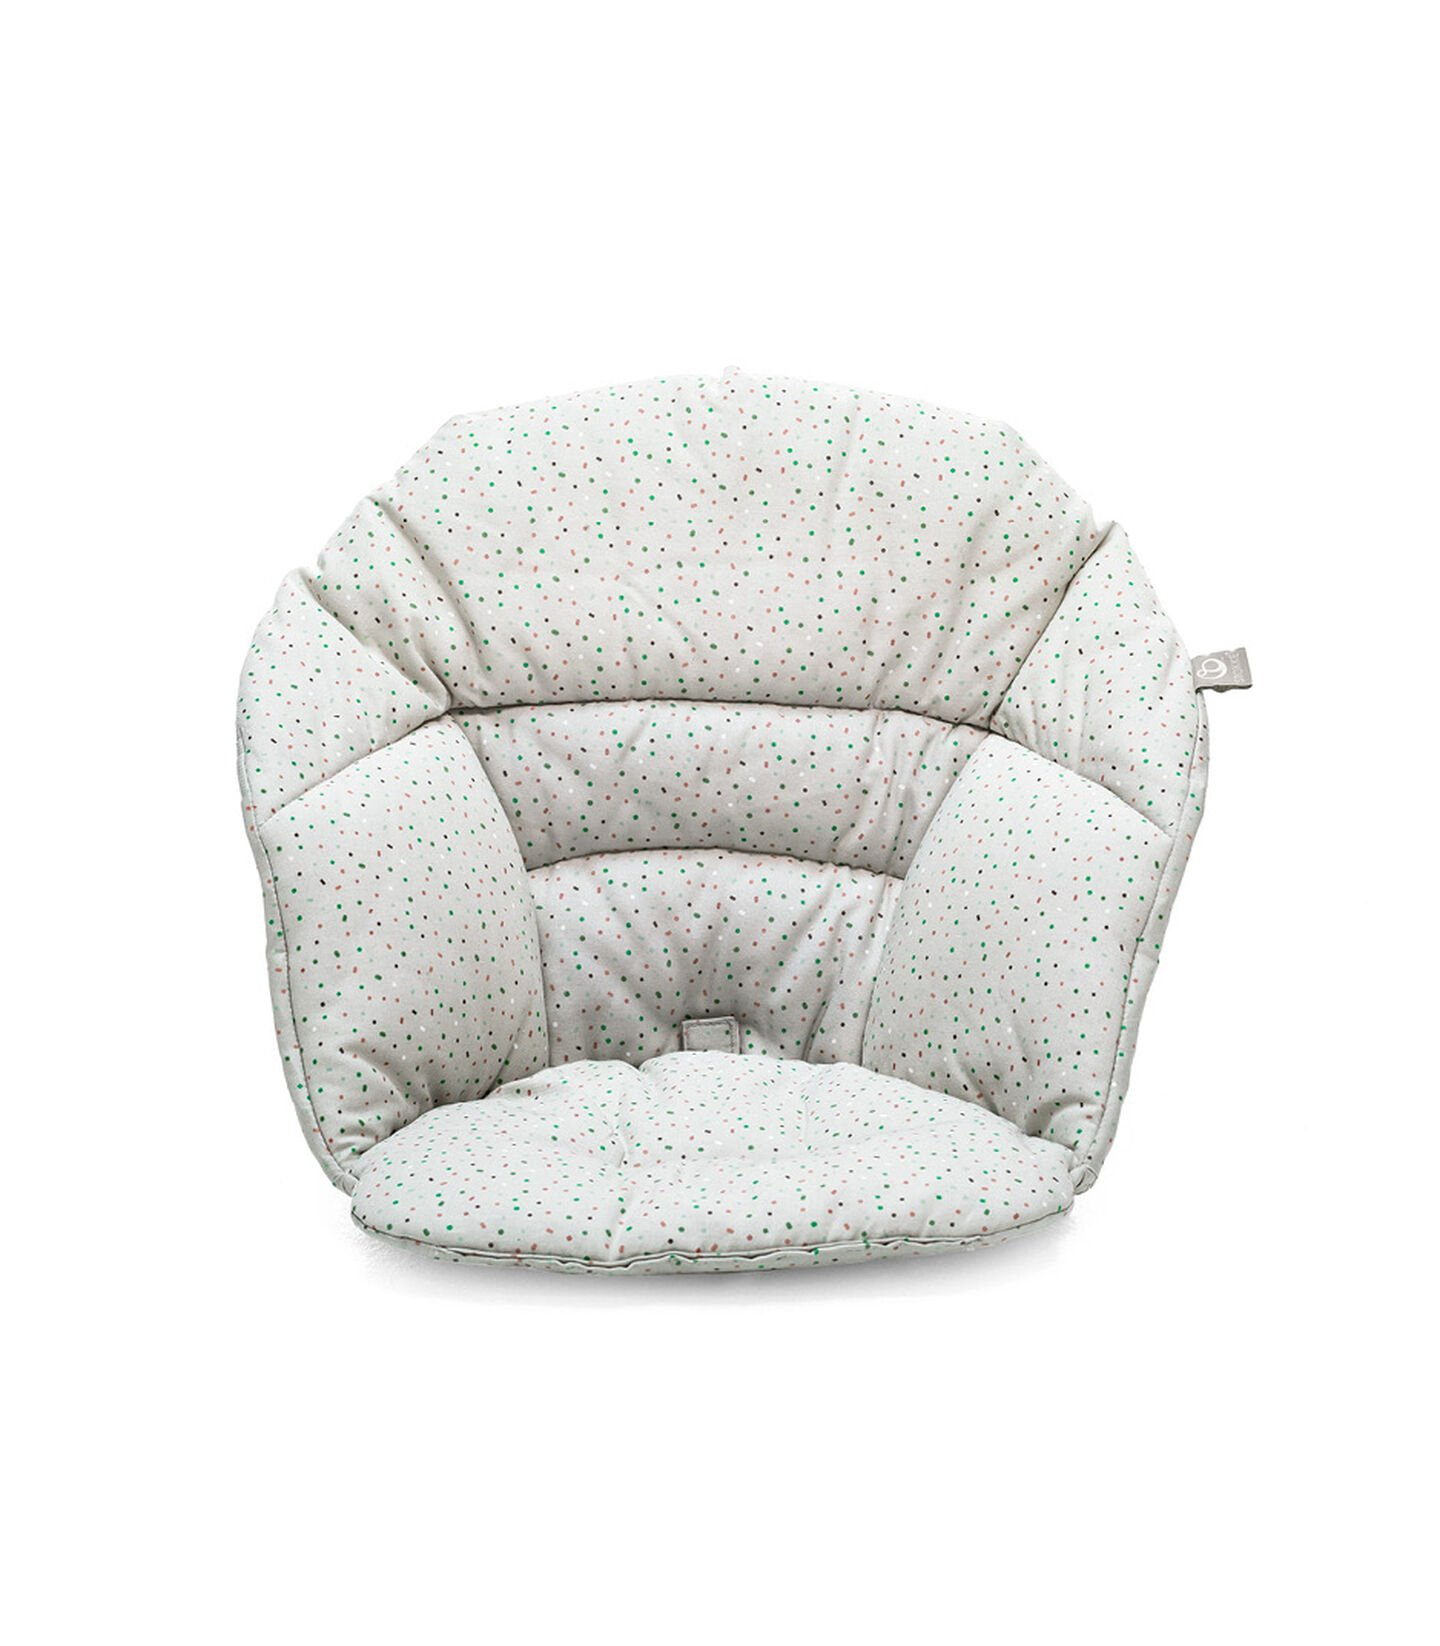 Stokke® Clikk™ Cushion Grey Sprinkles OCS, Grey Sprinkles, mainview view 2